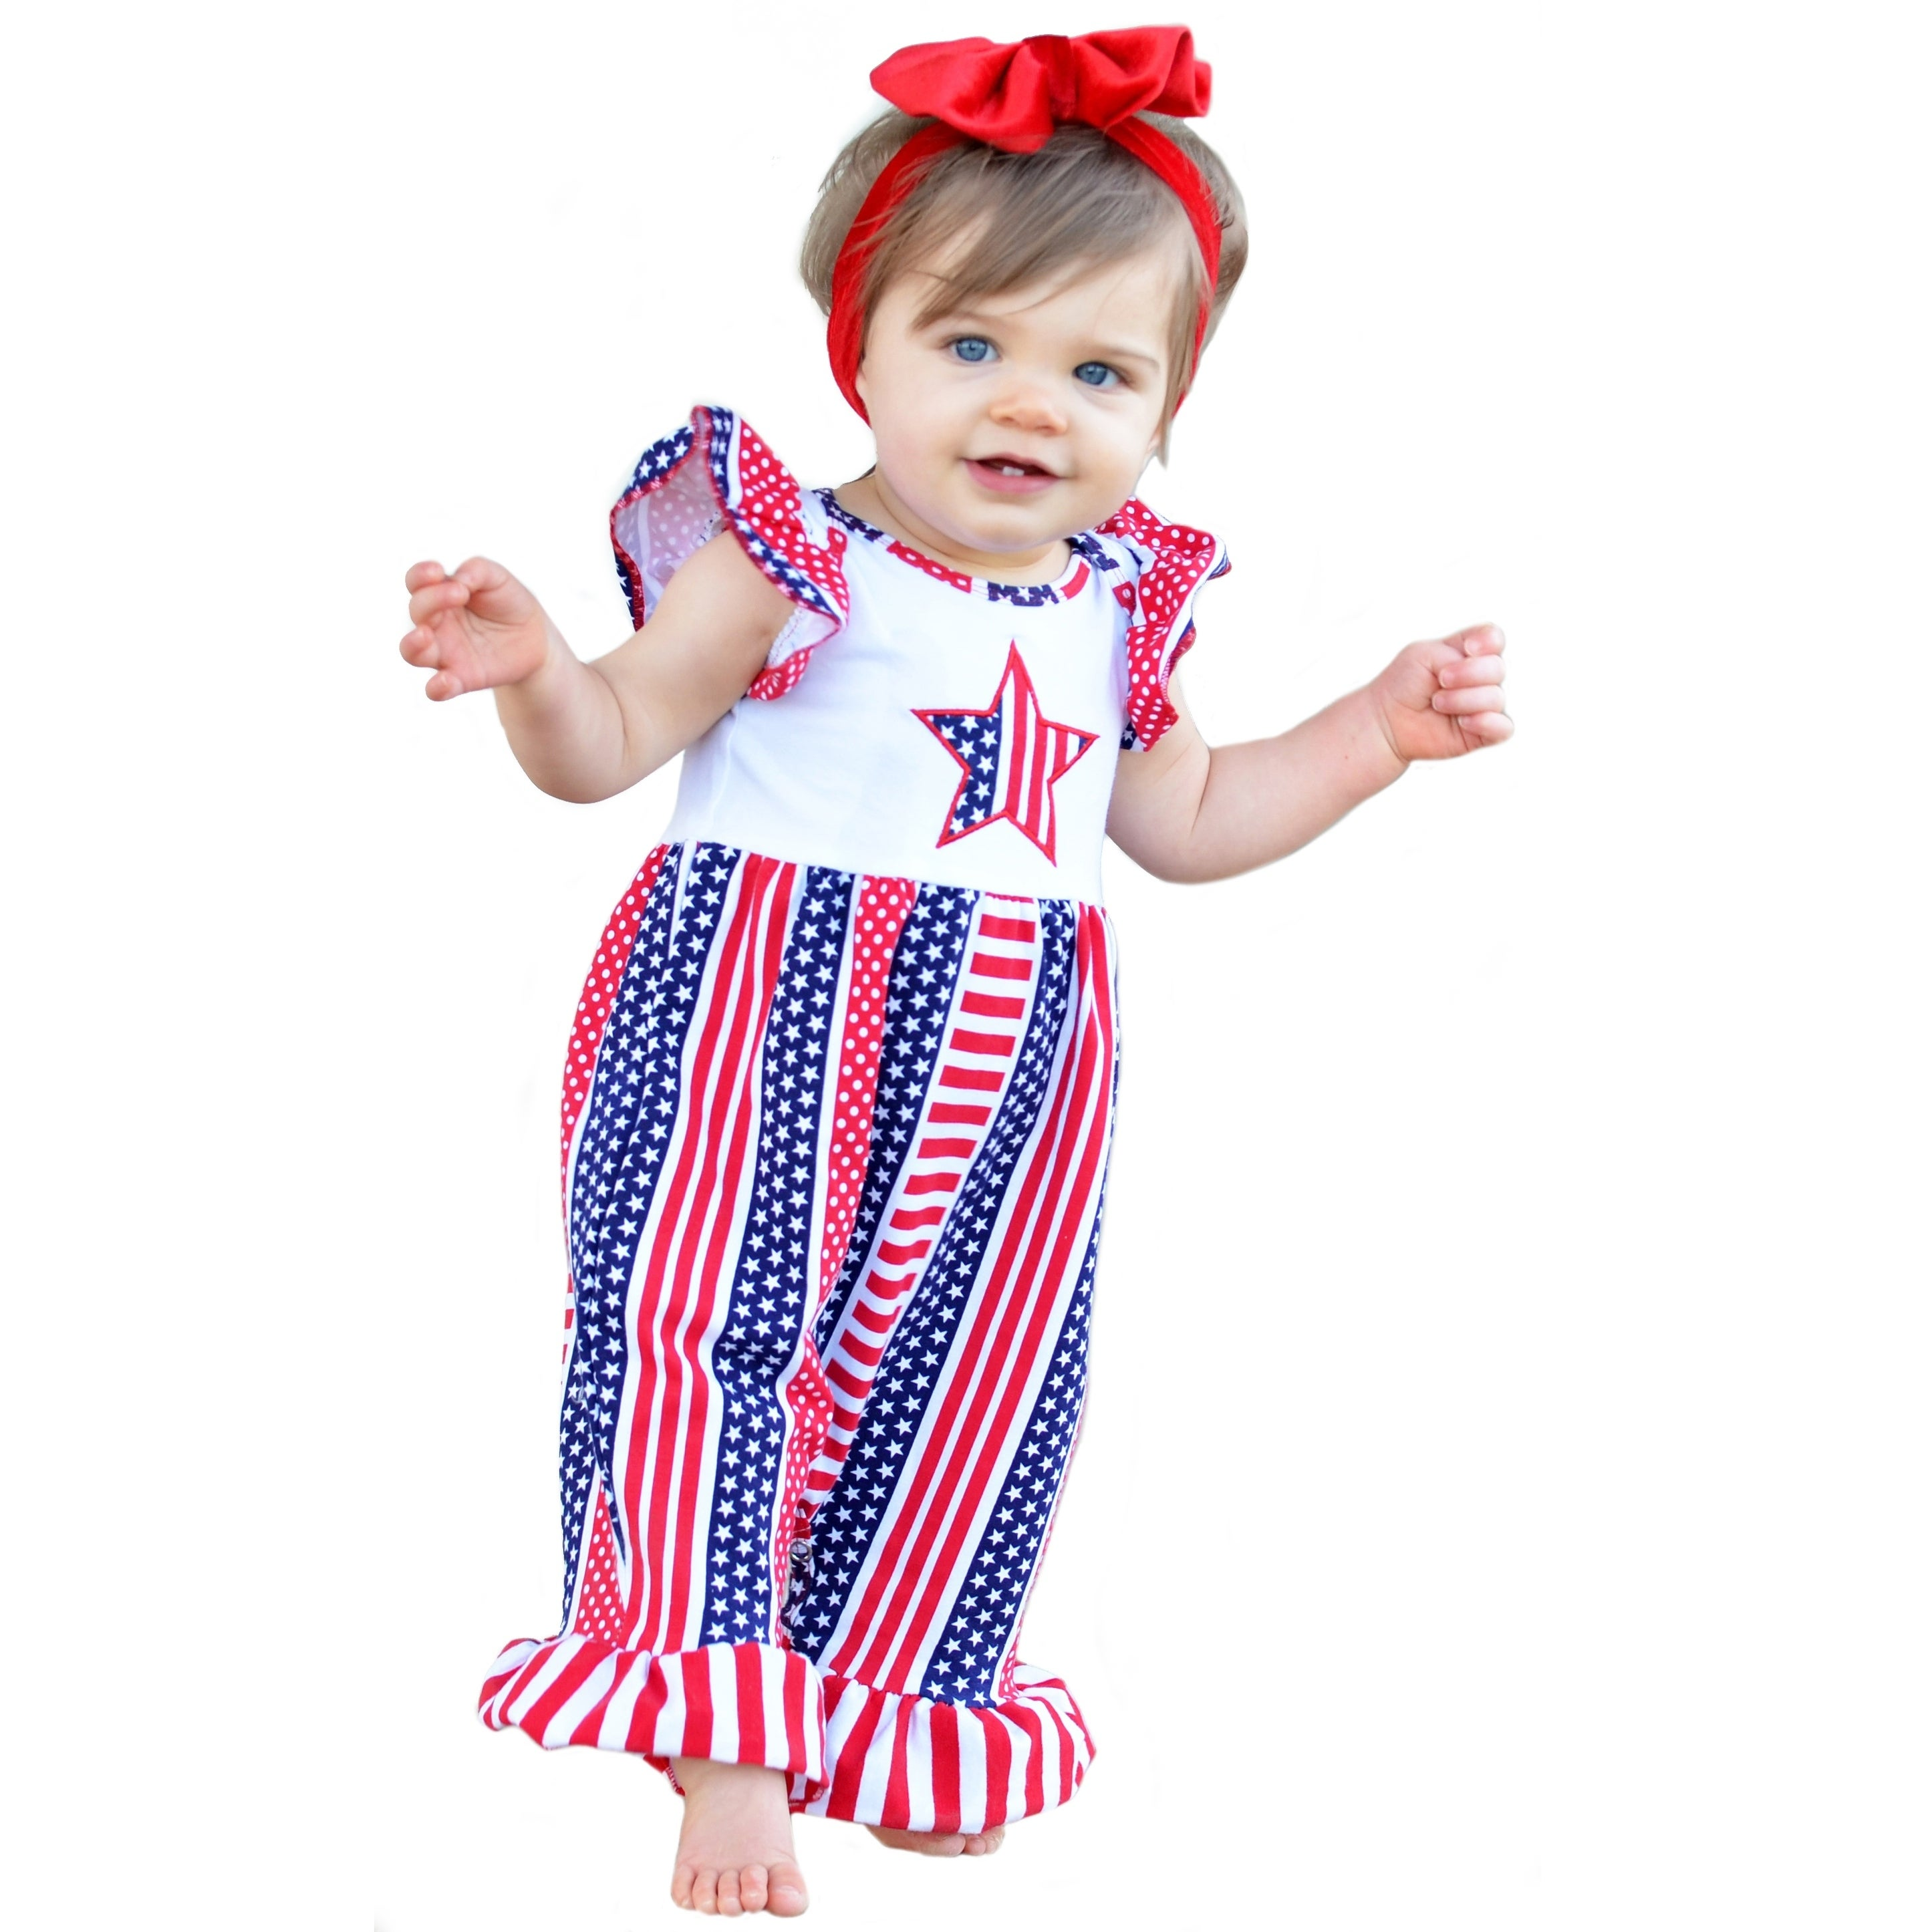 GIRLS 5T 4th Of JULY OUTFIT BOUTIQUE USA RUFFLE OUTFIT LAST ONE